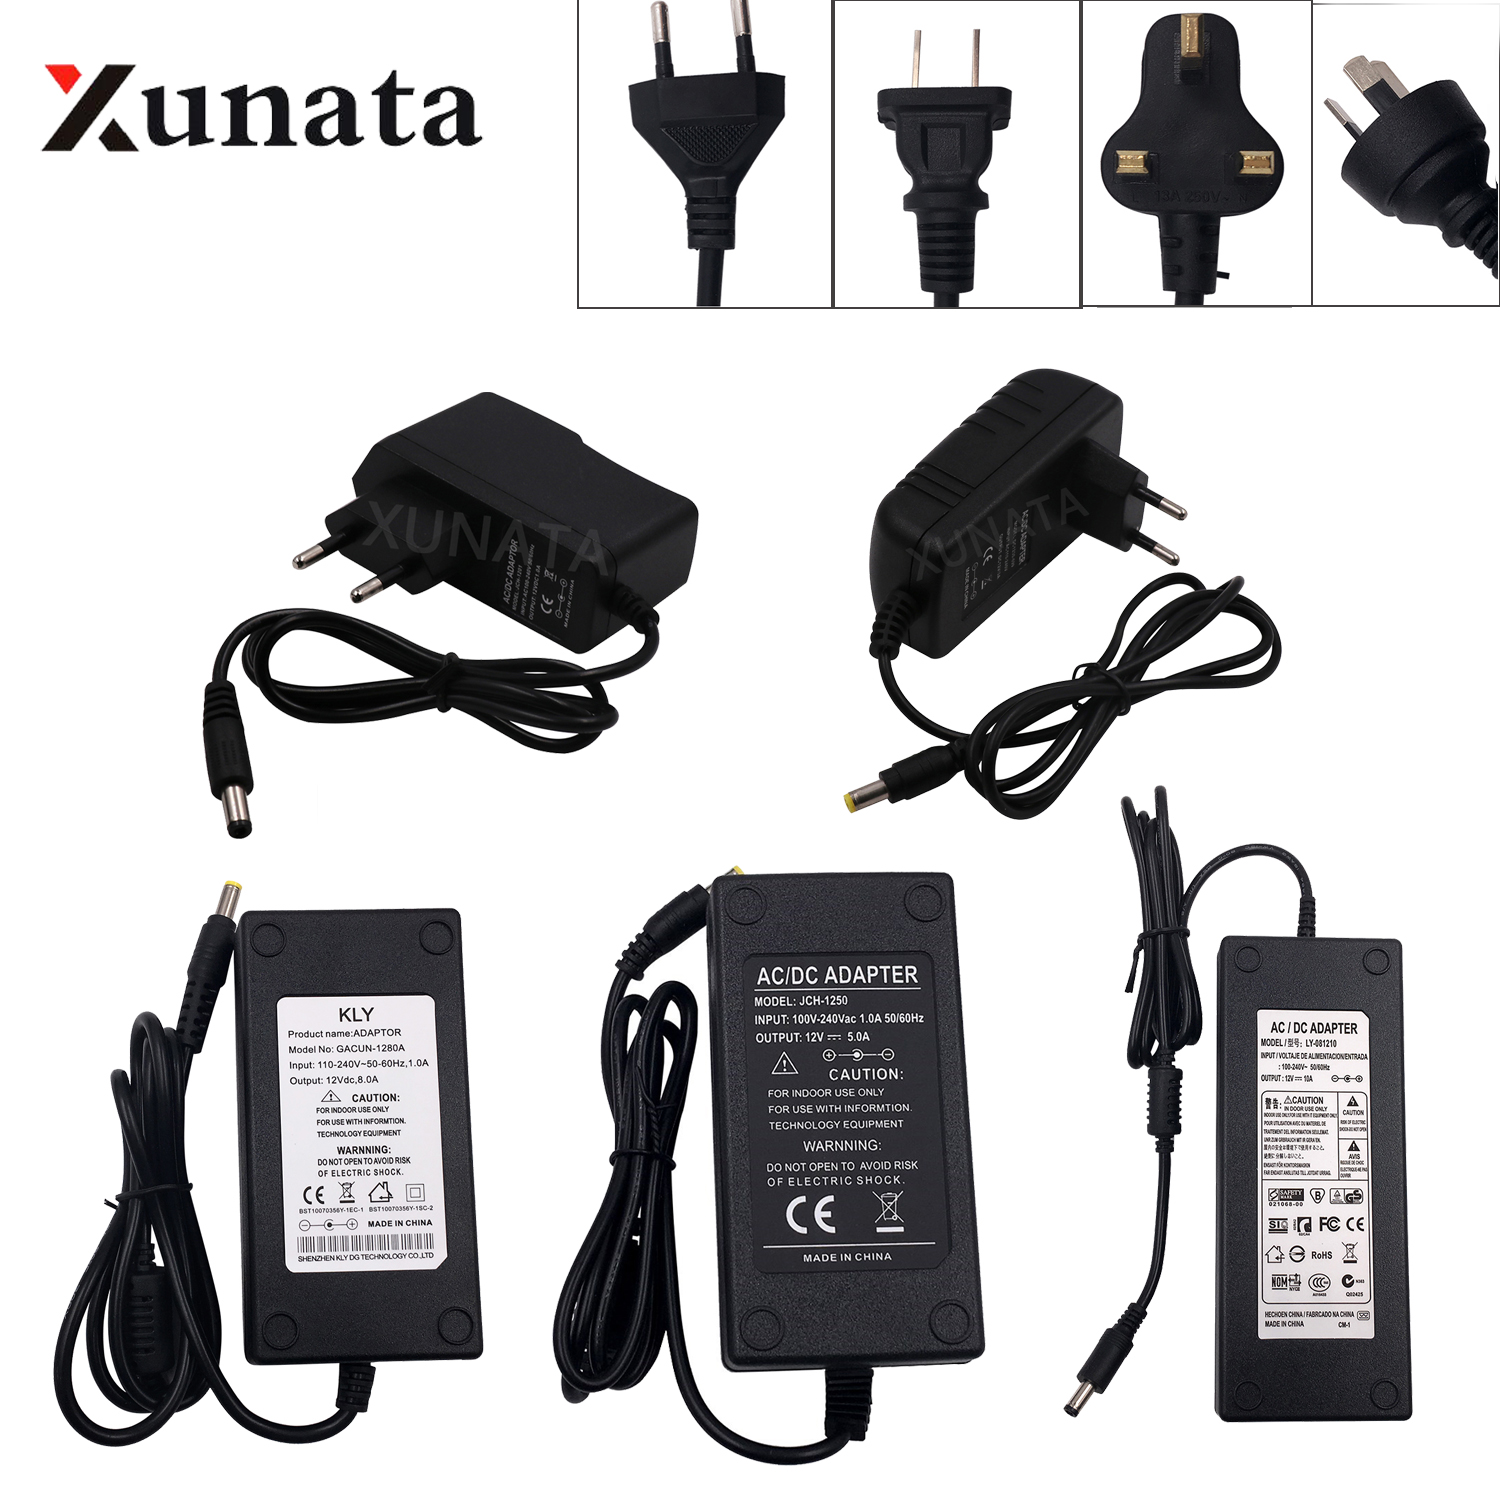 EU US UK AU AC100-240V To DC12V 1A 2A 3A 5A 6A 8A 10A Transformers Power Supply Adapter Converter Charger For LED Light Strip